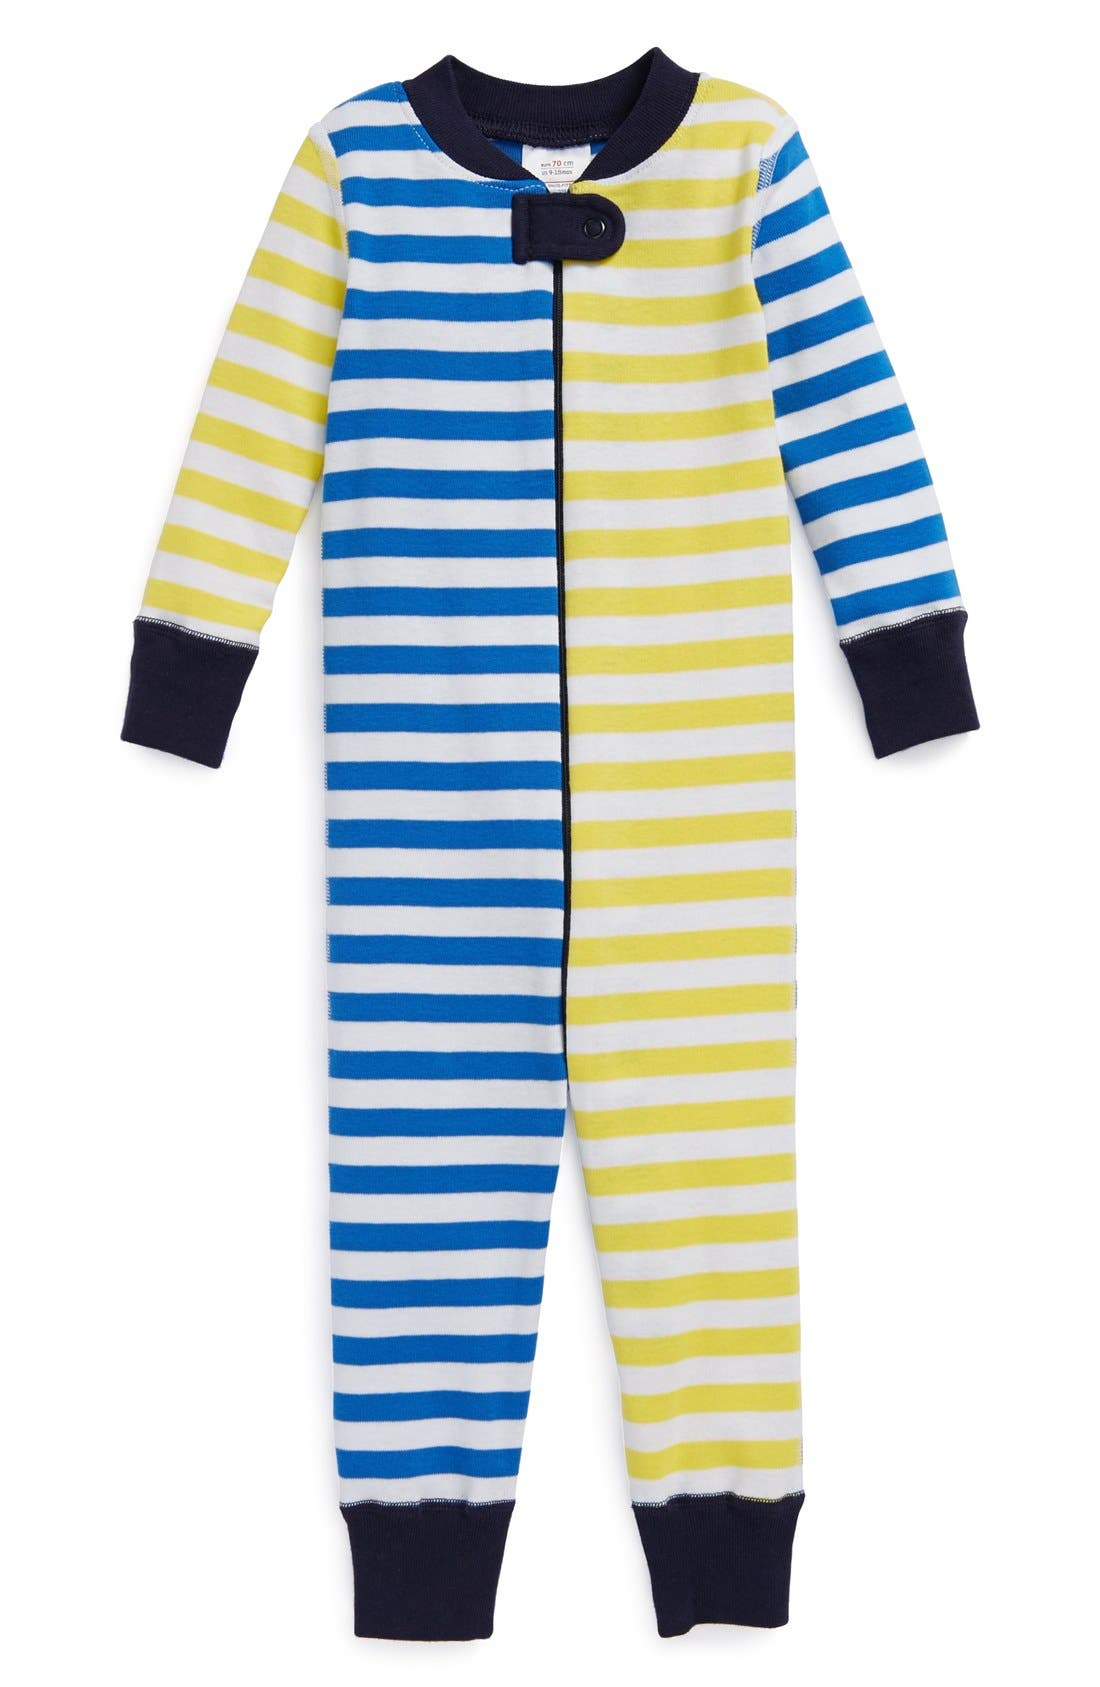 Alternate Image 1 Selected - Hanna Andersson 'Mix It Up' Fitted Organic Cotton Romper (Baby Boys)